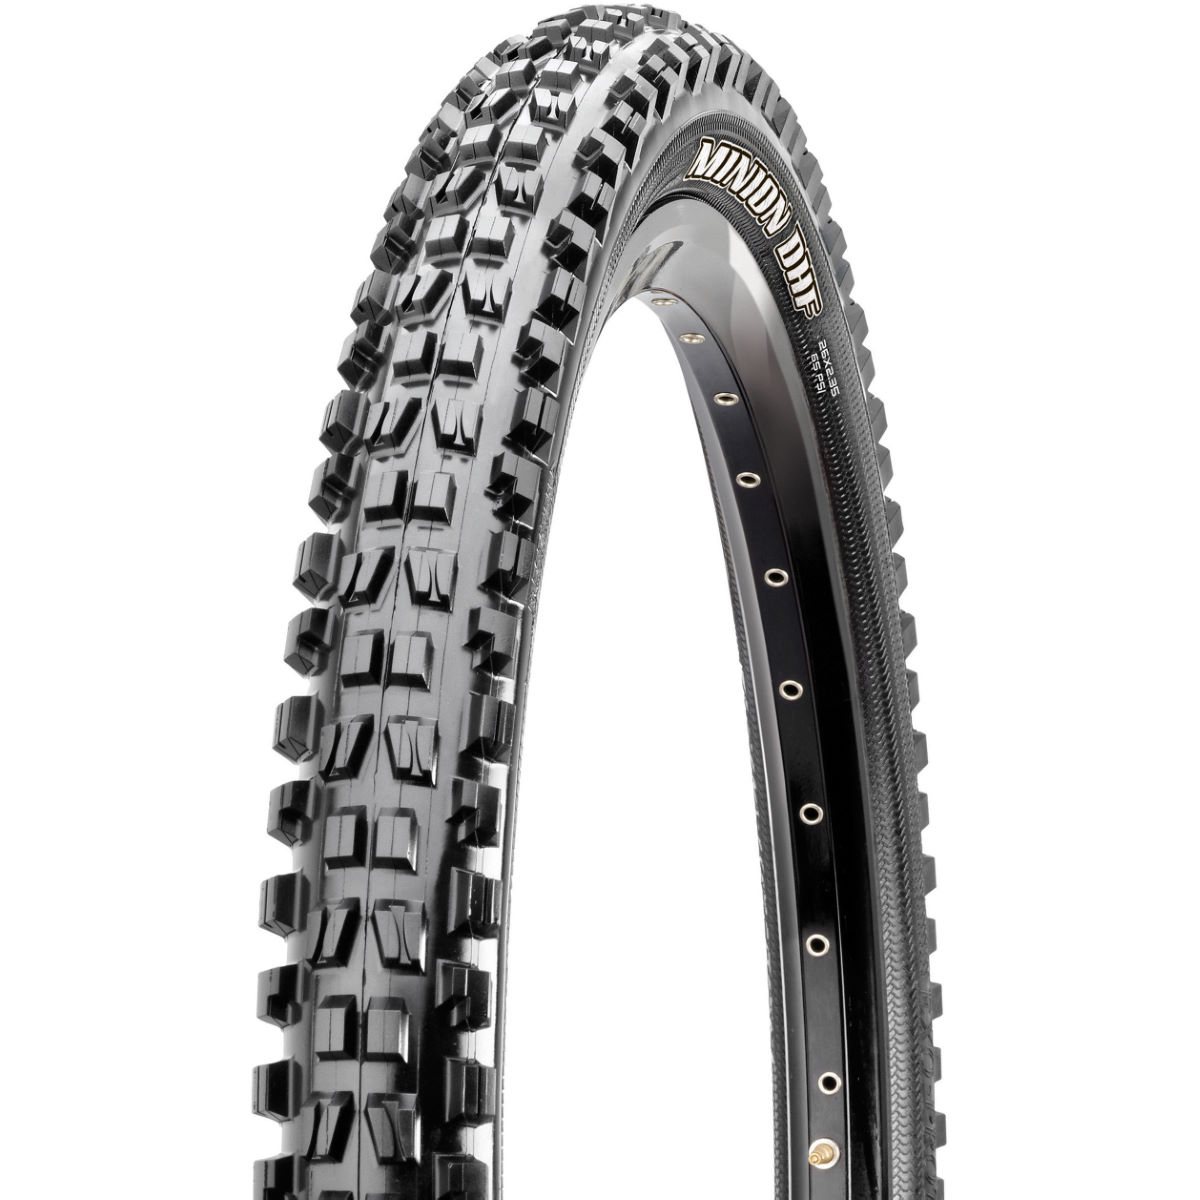 Maxxis Maxxis Minion DHF Wide Trail Tyre - EXO - TR   Tyres